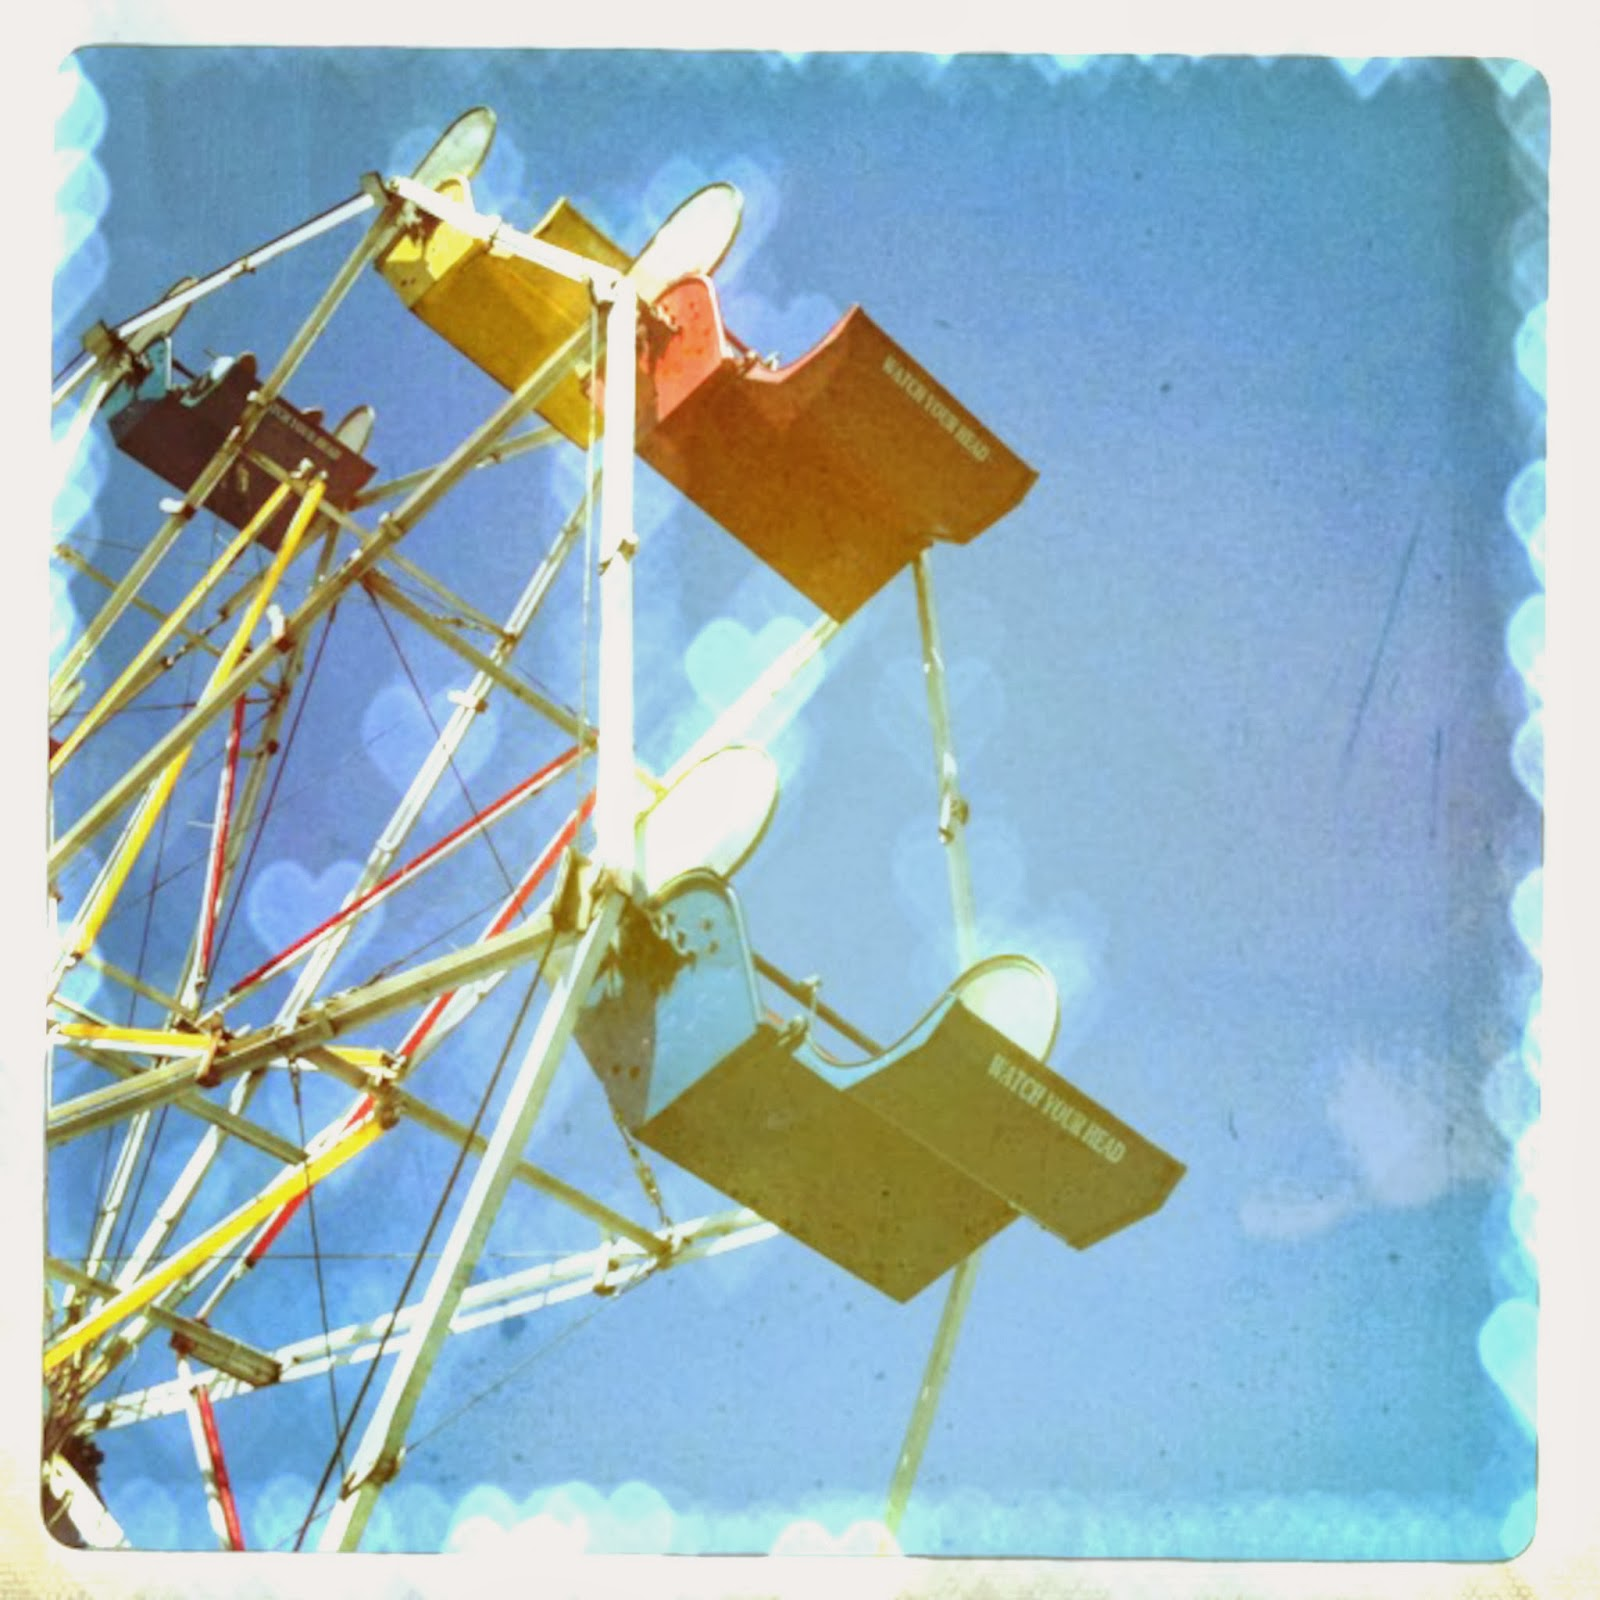 https://www.etsy.com/listing/175537176/ferris-wheel-photograph-vintage-style?ref=listing-shop-header-1